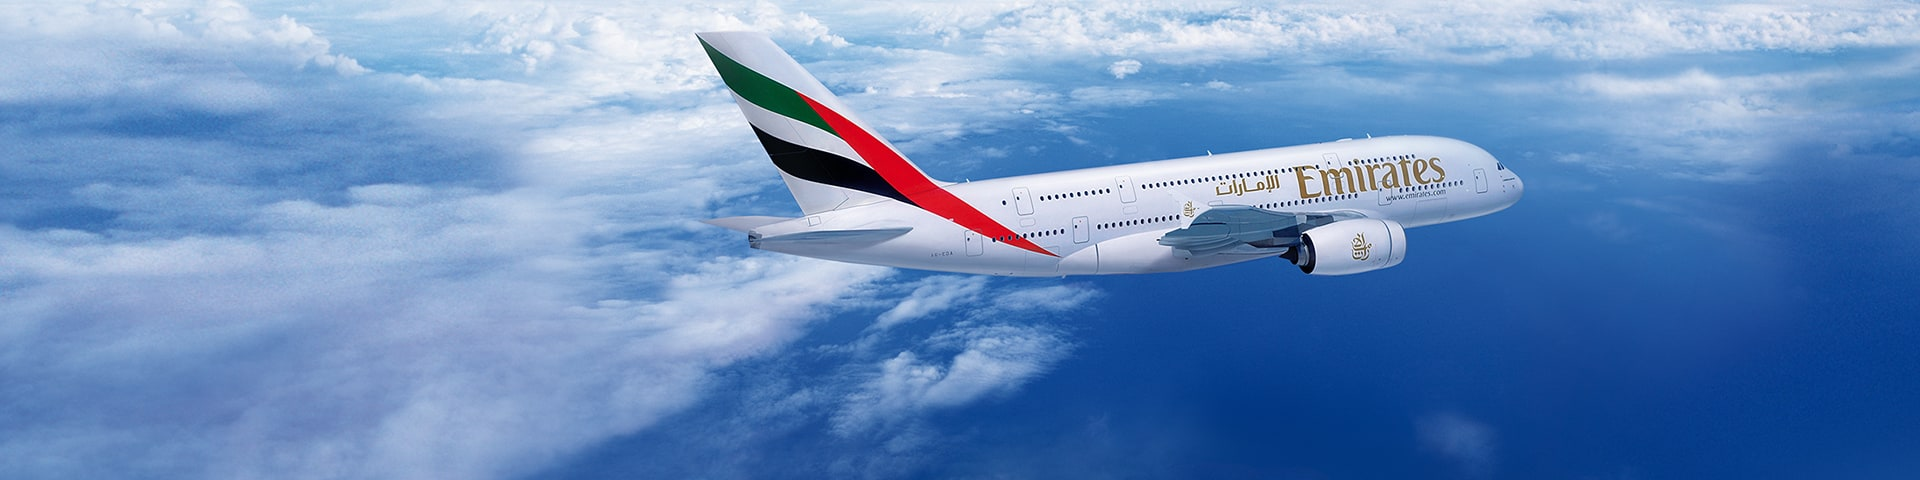 Lit Chez Fly Emirates Flights Book A Flight Browse Our Flight Offers And